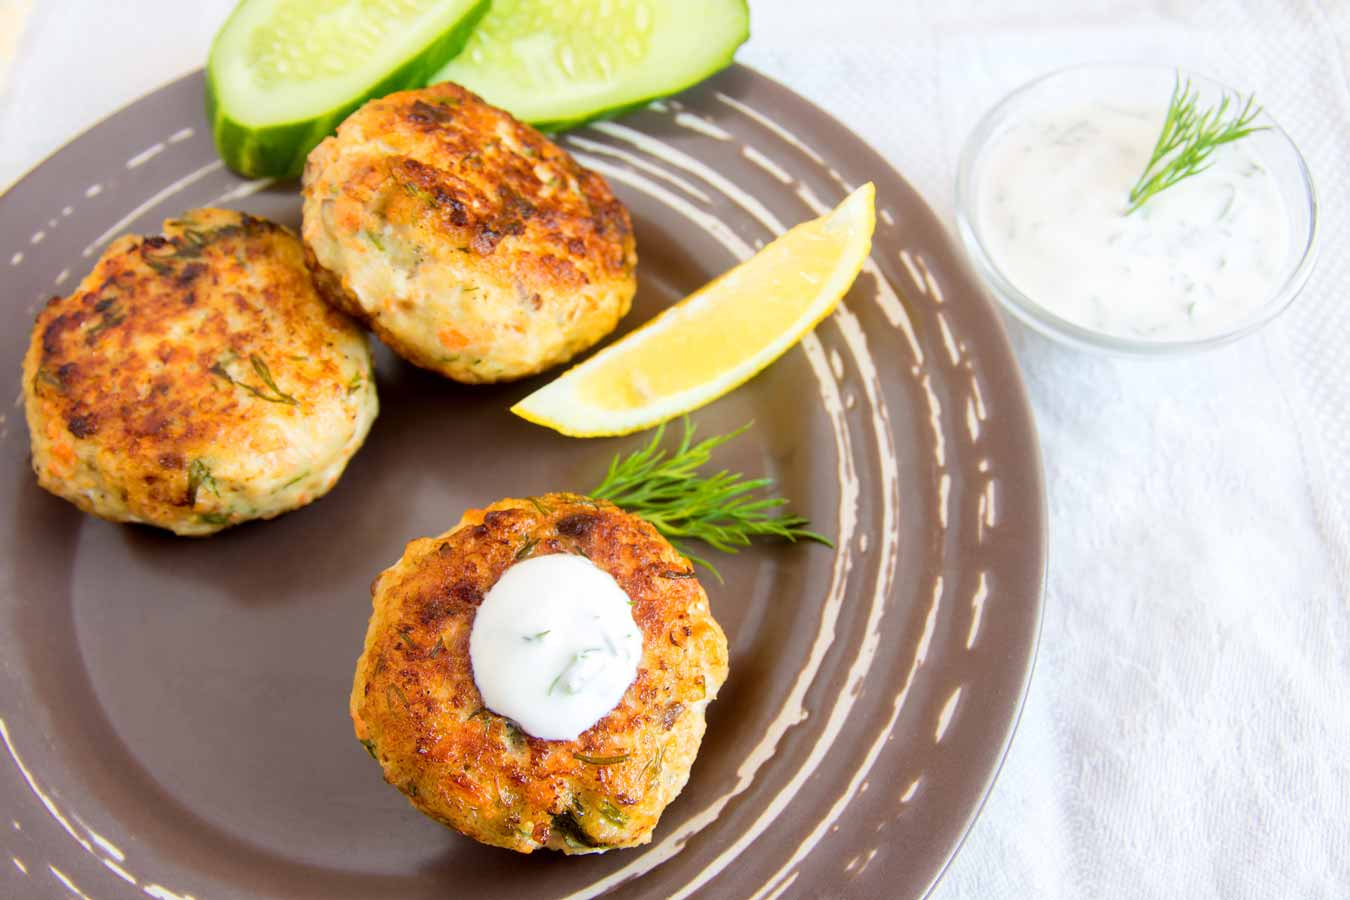 Tasty Shrimp and Crab Fritters with Remoulade Sauce